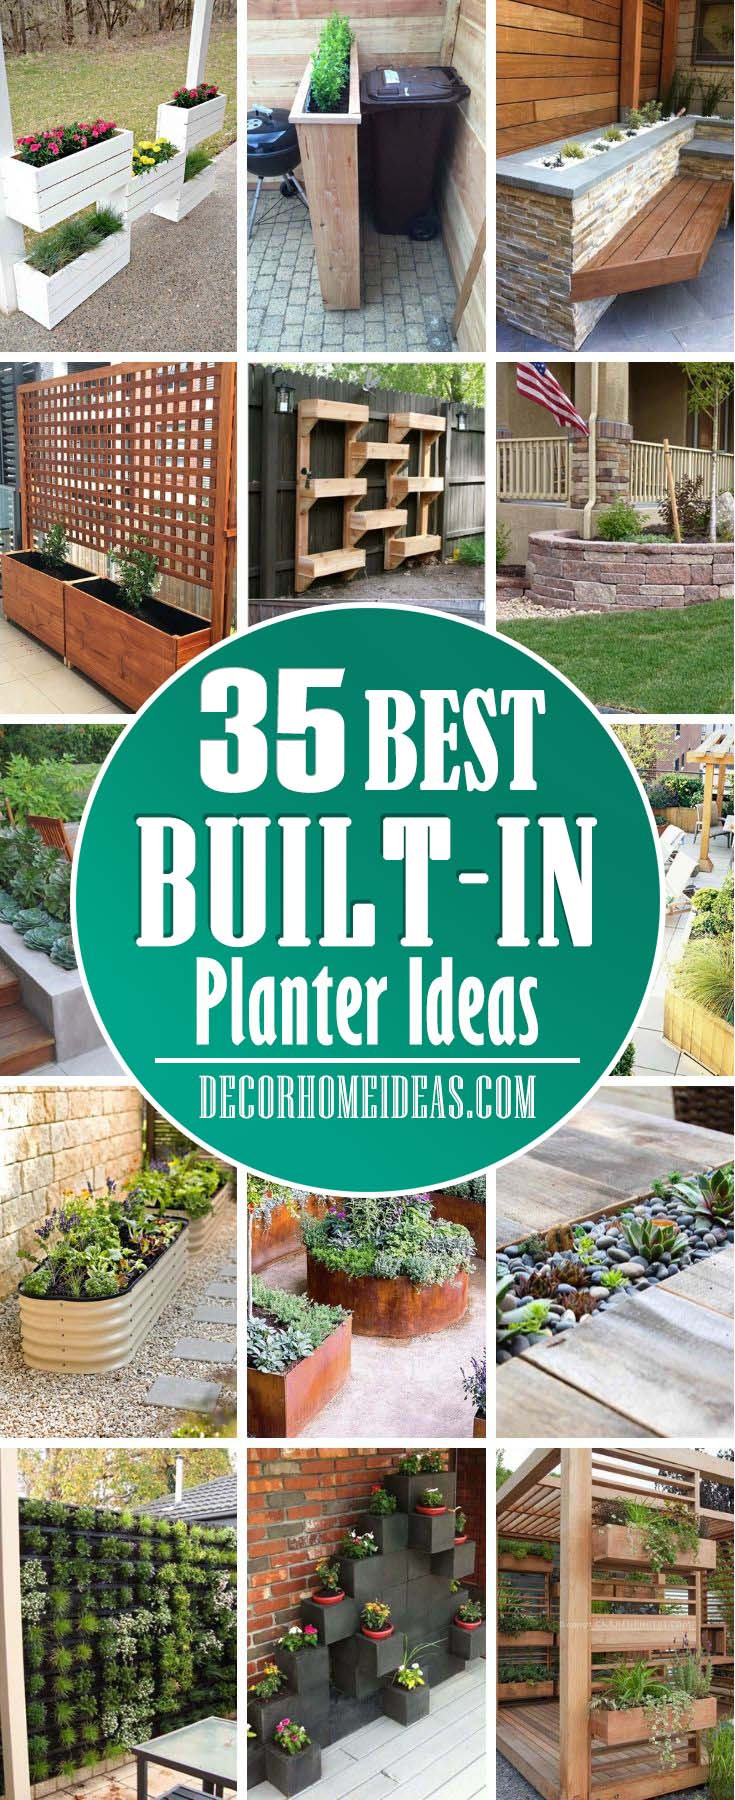 Best Built In Planter Ideas. Save space and add charm to your garden, patio or backyard with these beautiful built-in planter ideas. #diy #planter #decorhomeideas